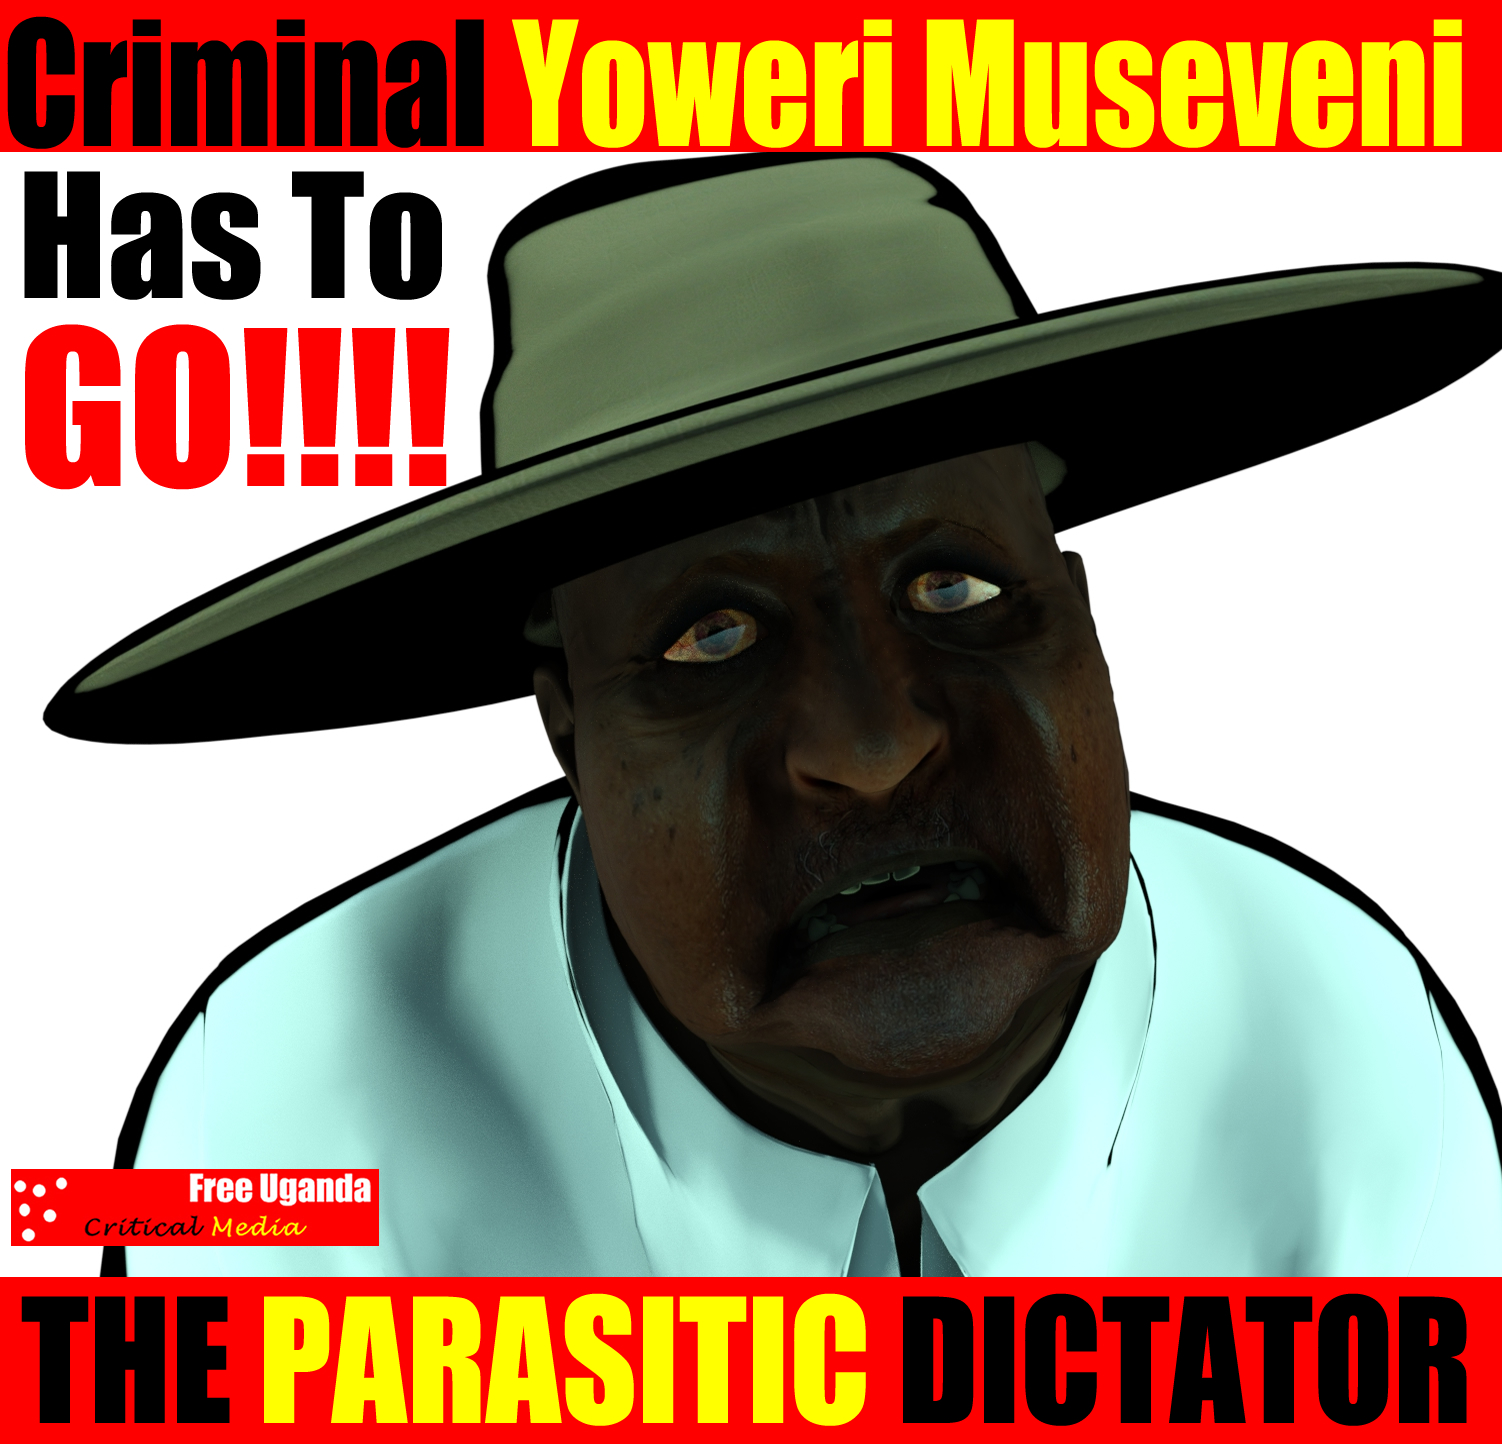 Yoweri Museveni is dead man walking